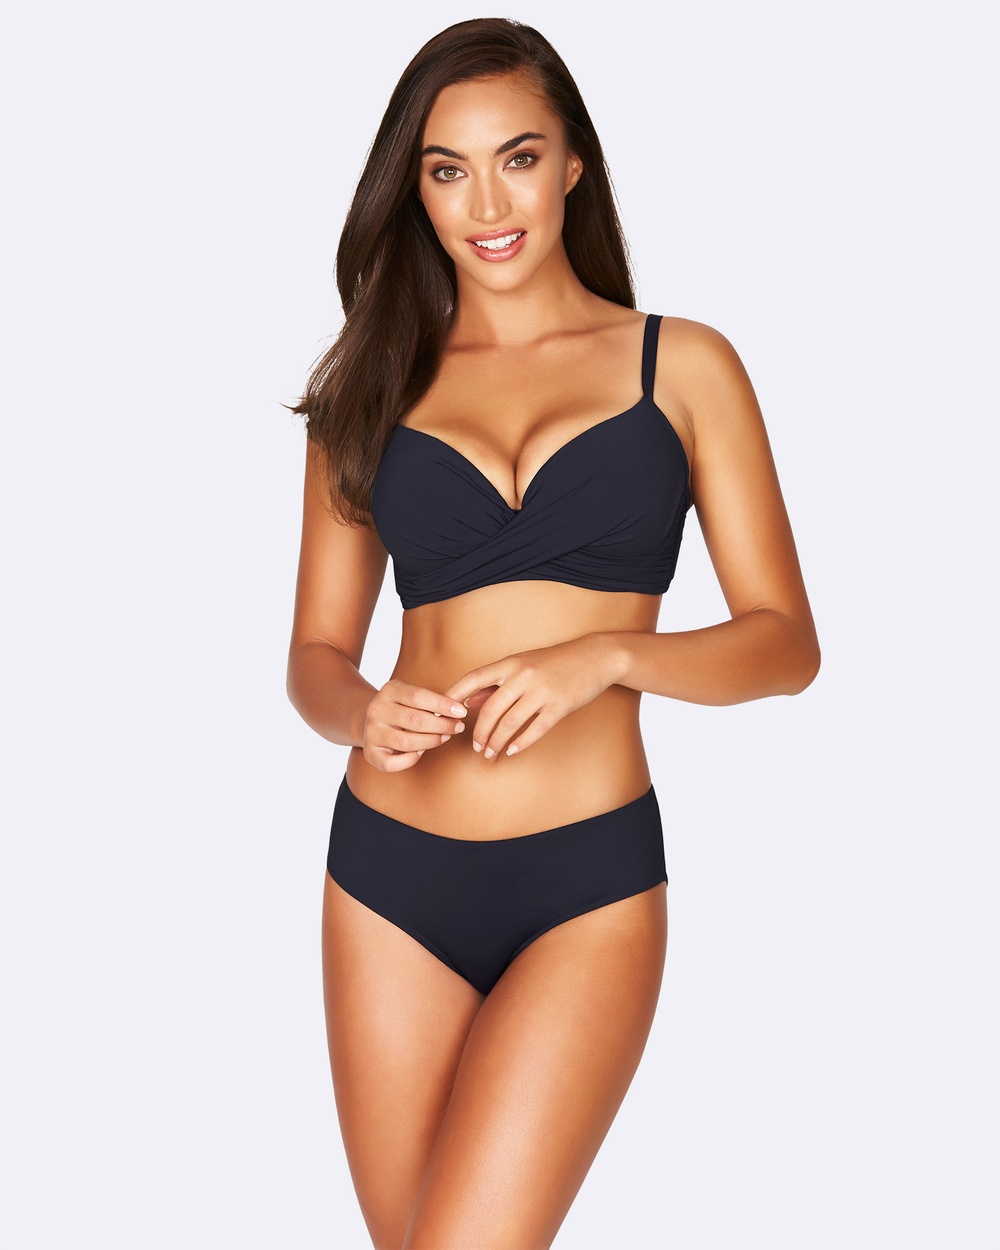 Sea Level by Nip tuck swim Cross Front Moulded Underwire Bra Bikini Tops Night Sky Cross Front Moulded Underwire Bra